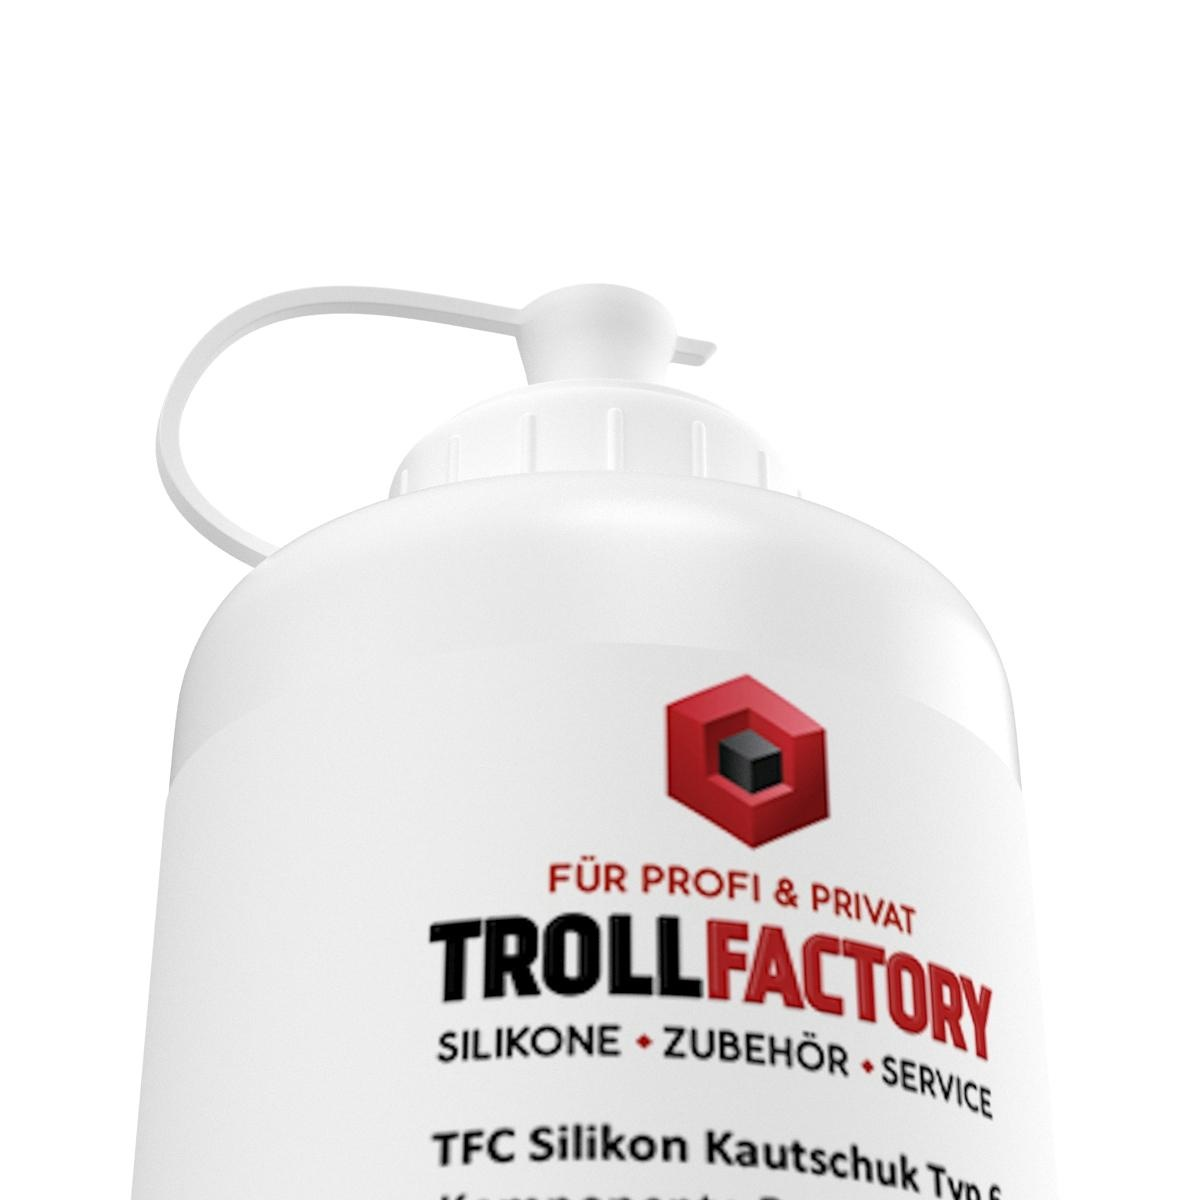 Troll Factory TFC Troll Factory Silicone Rubber Type 6 Food 1000g